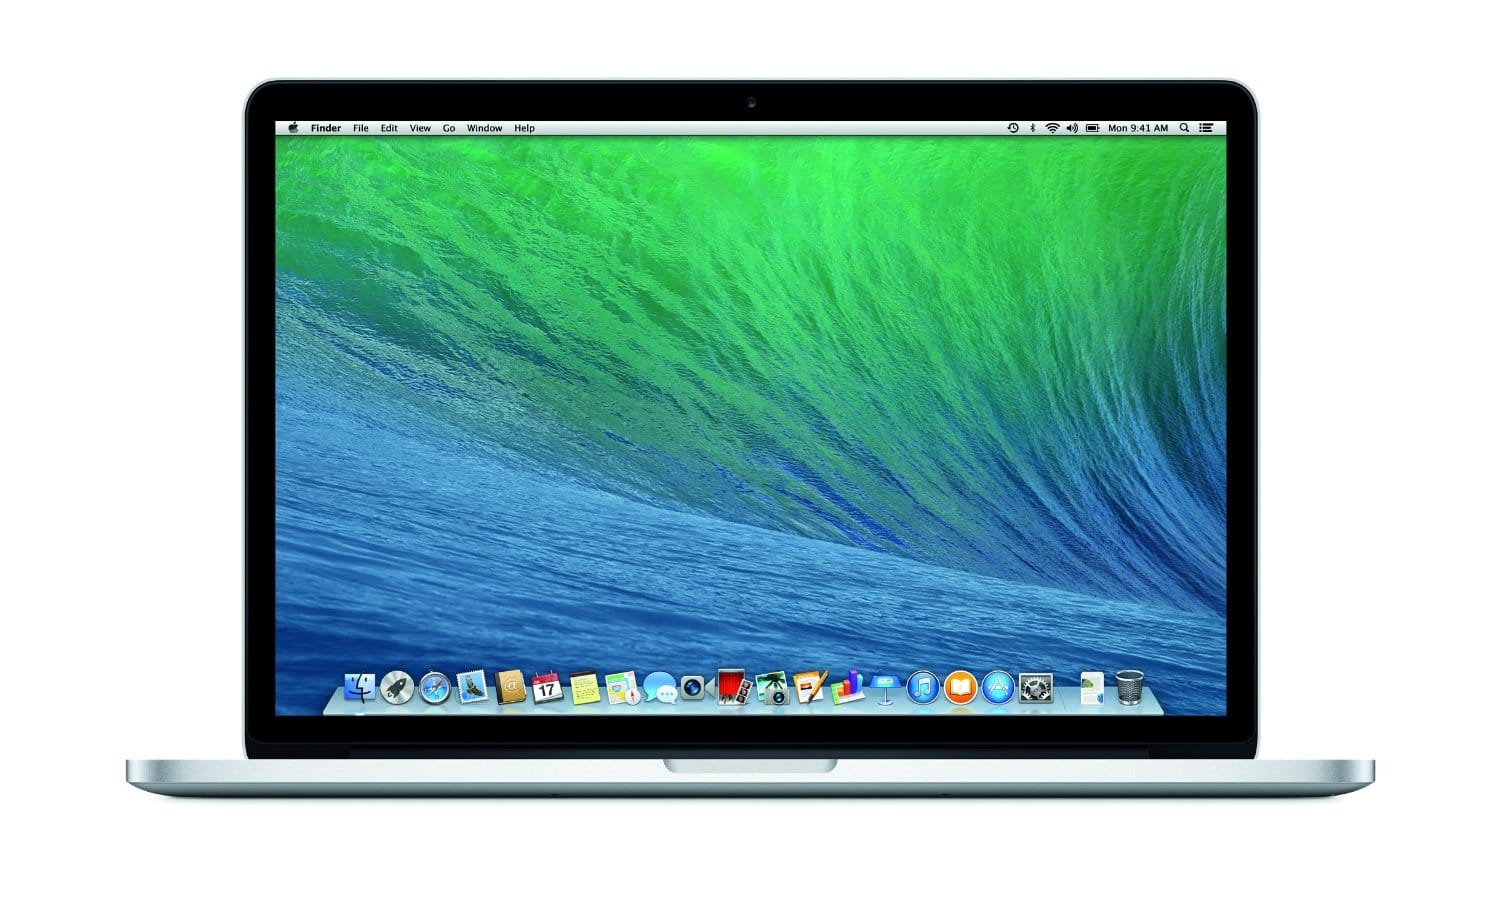 MacBook Pro or MacBook Air for a college student?